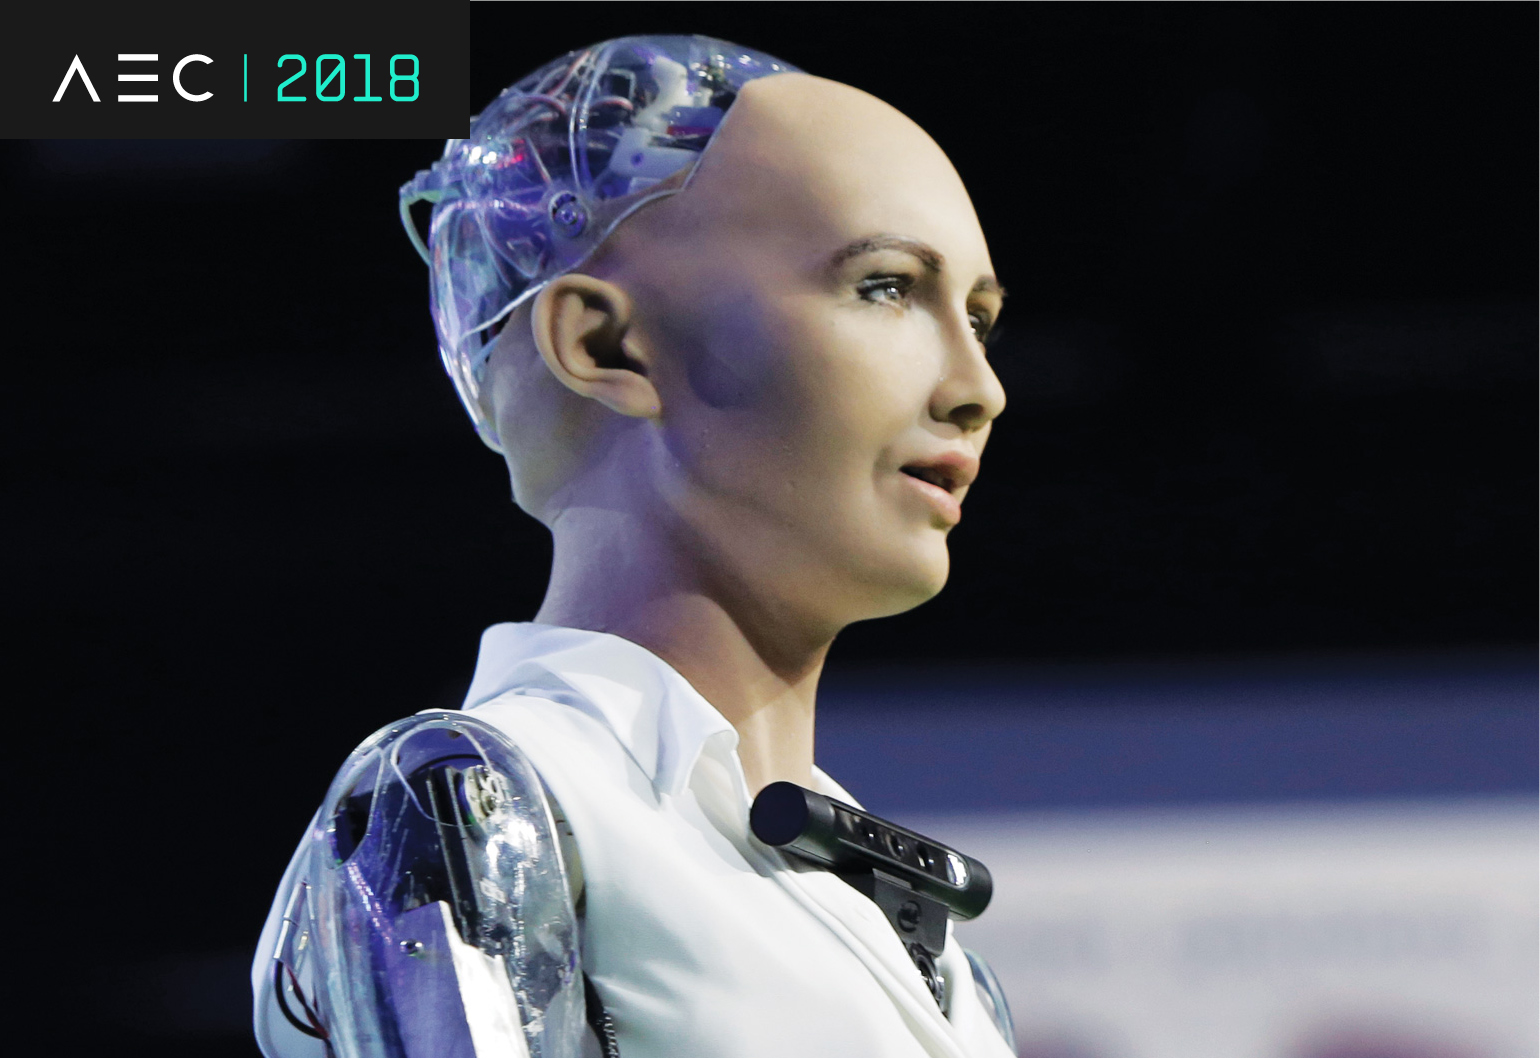 Meet Sophia, the humanoid robot that has the world talking ...